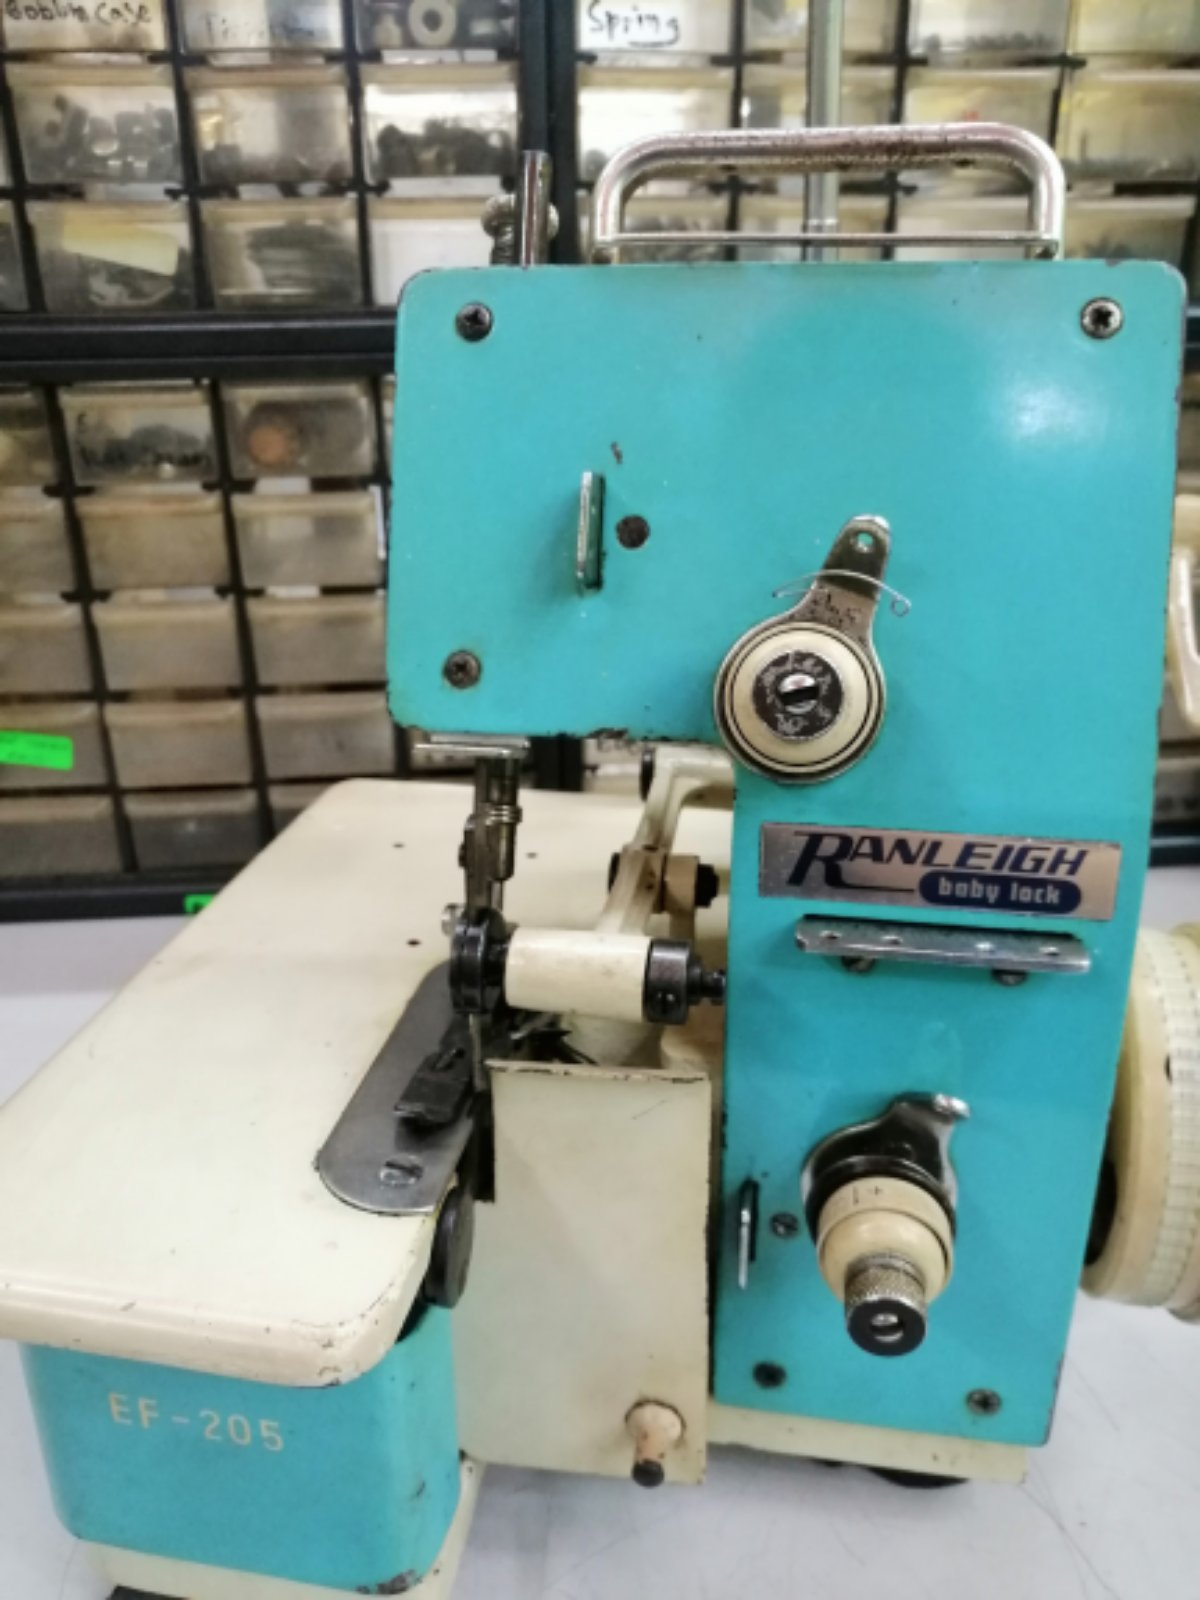 Sevis Ranleigh Baby Lock Sewing Machine